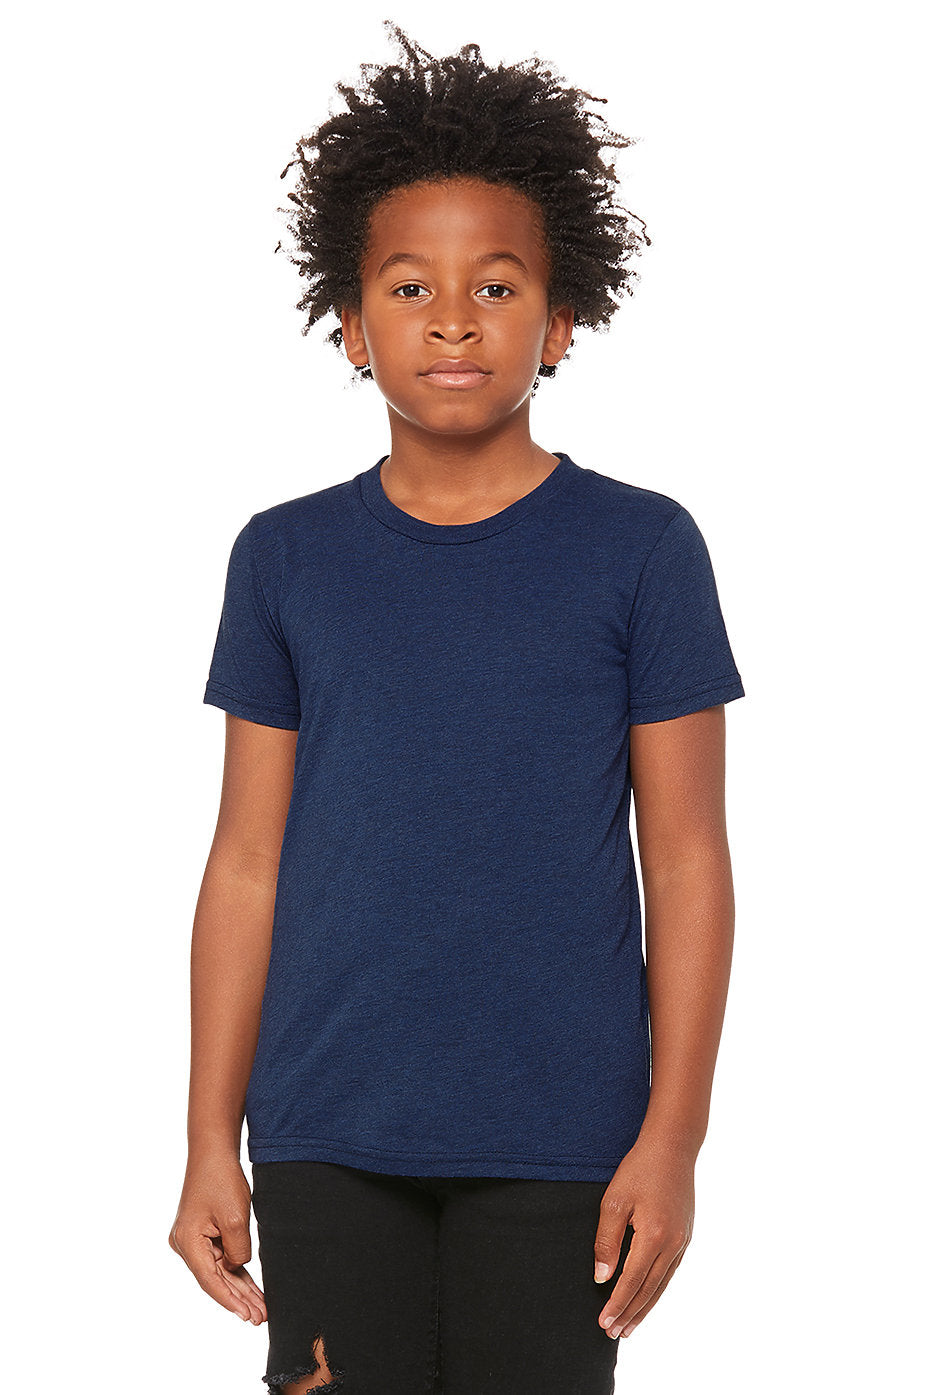 Santa Cruz Strong Kids Navy (S-XL)